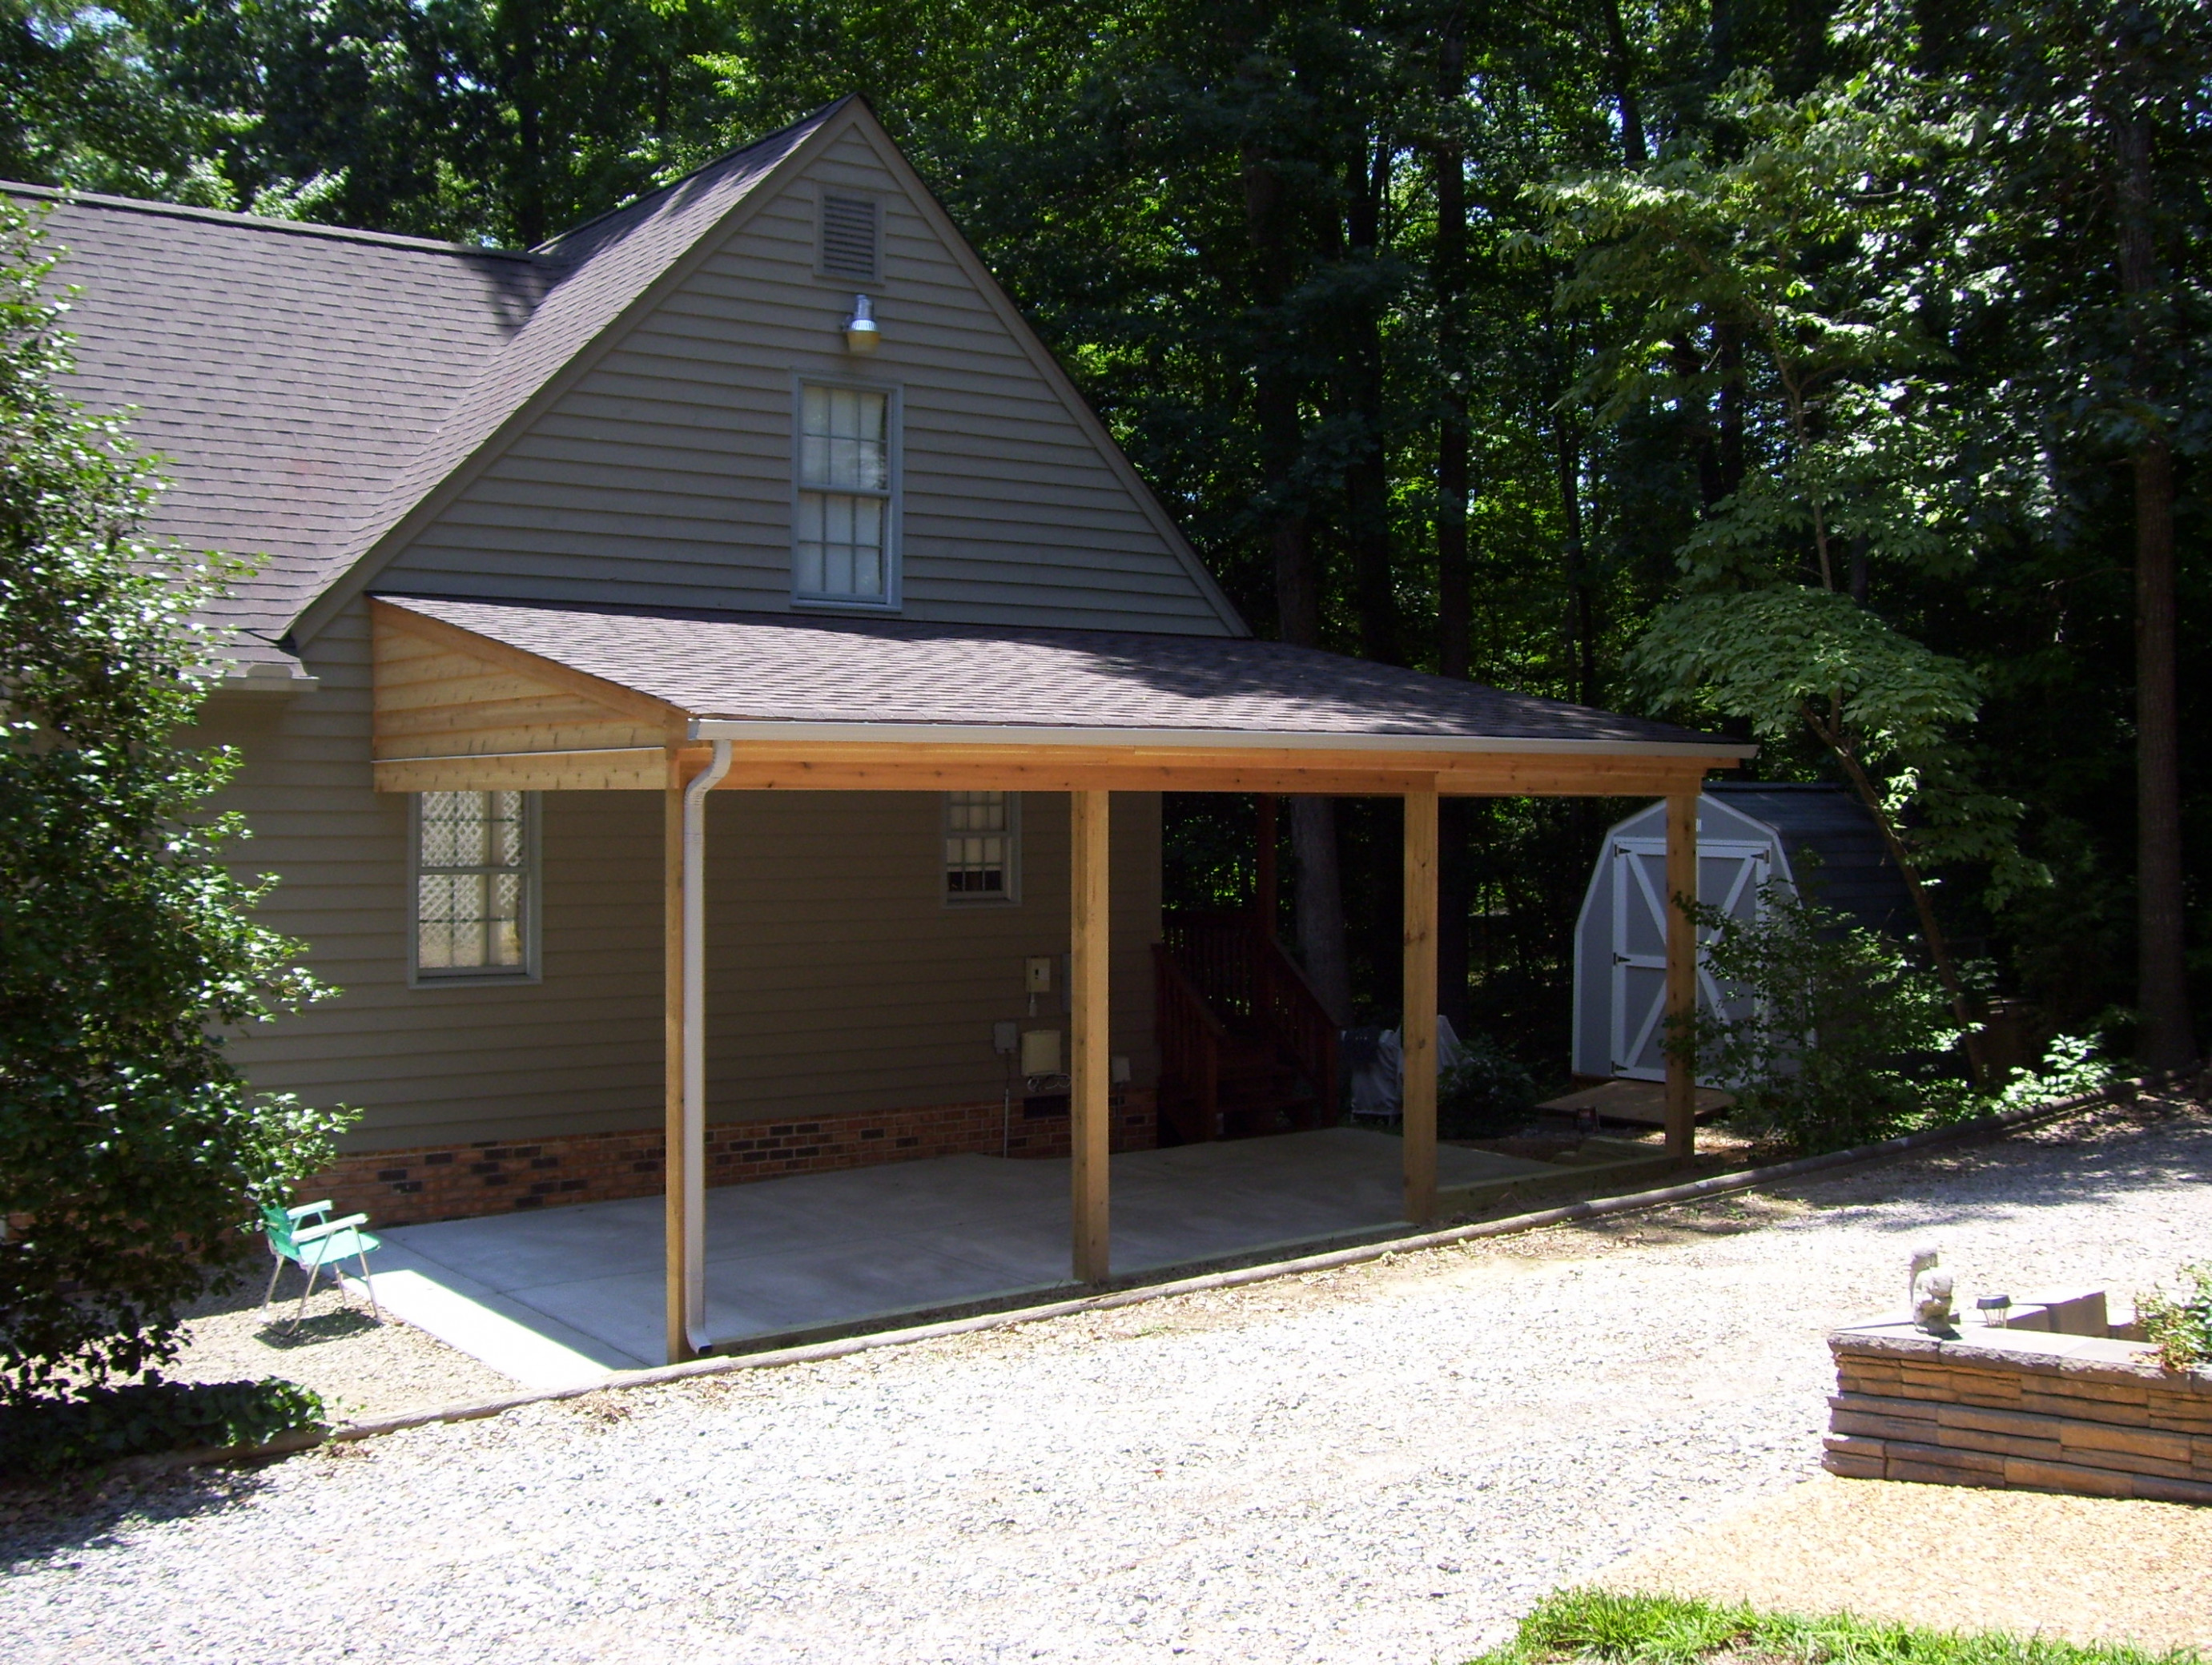 Backyard Ideas Carport With Storage Garage Shed Car Port ..